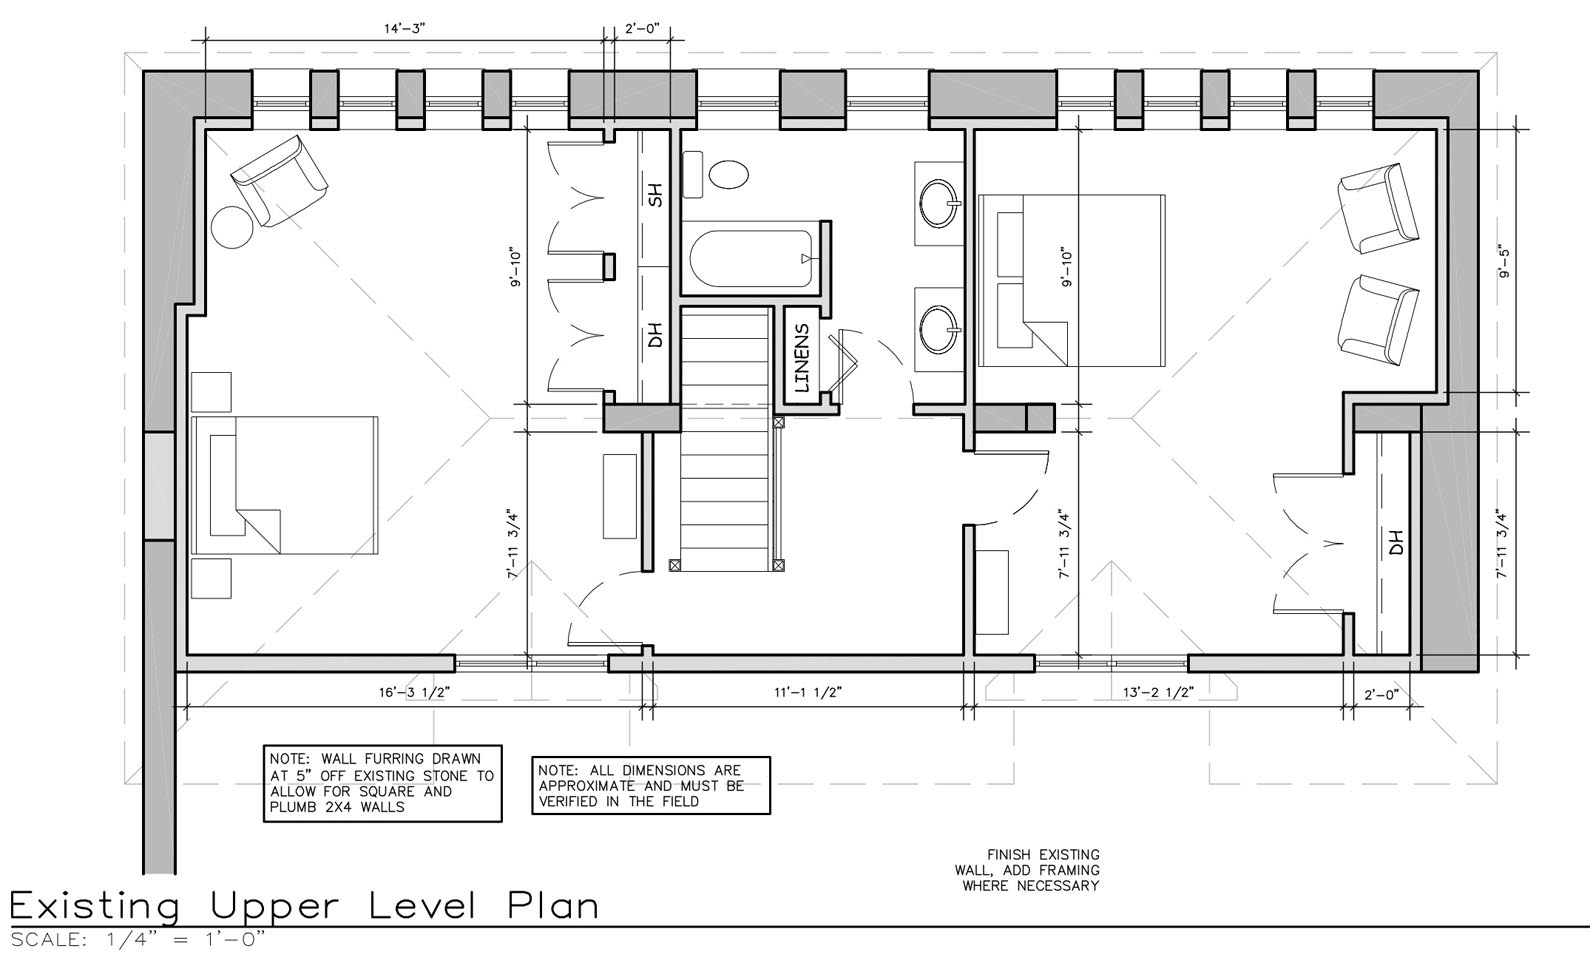 Go to ground floor plan